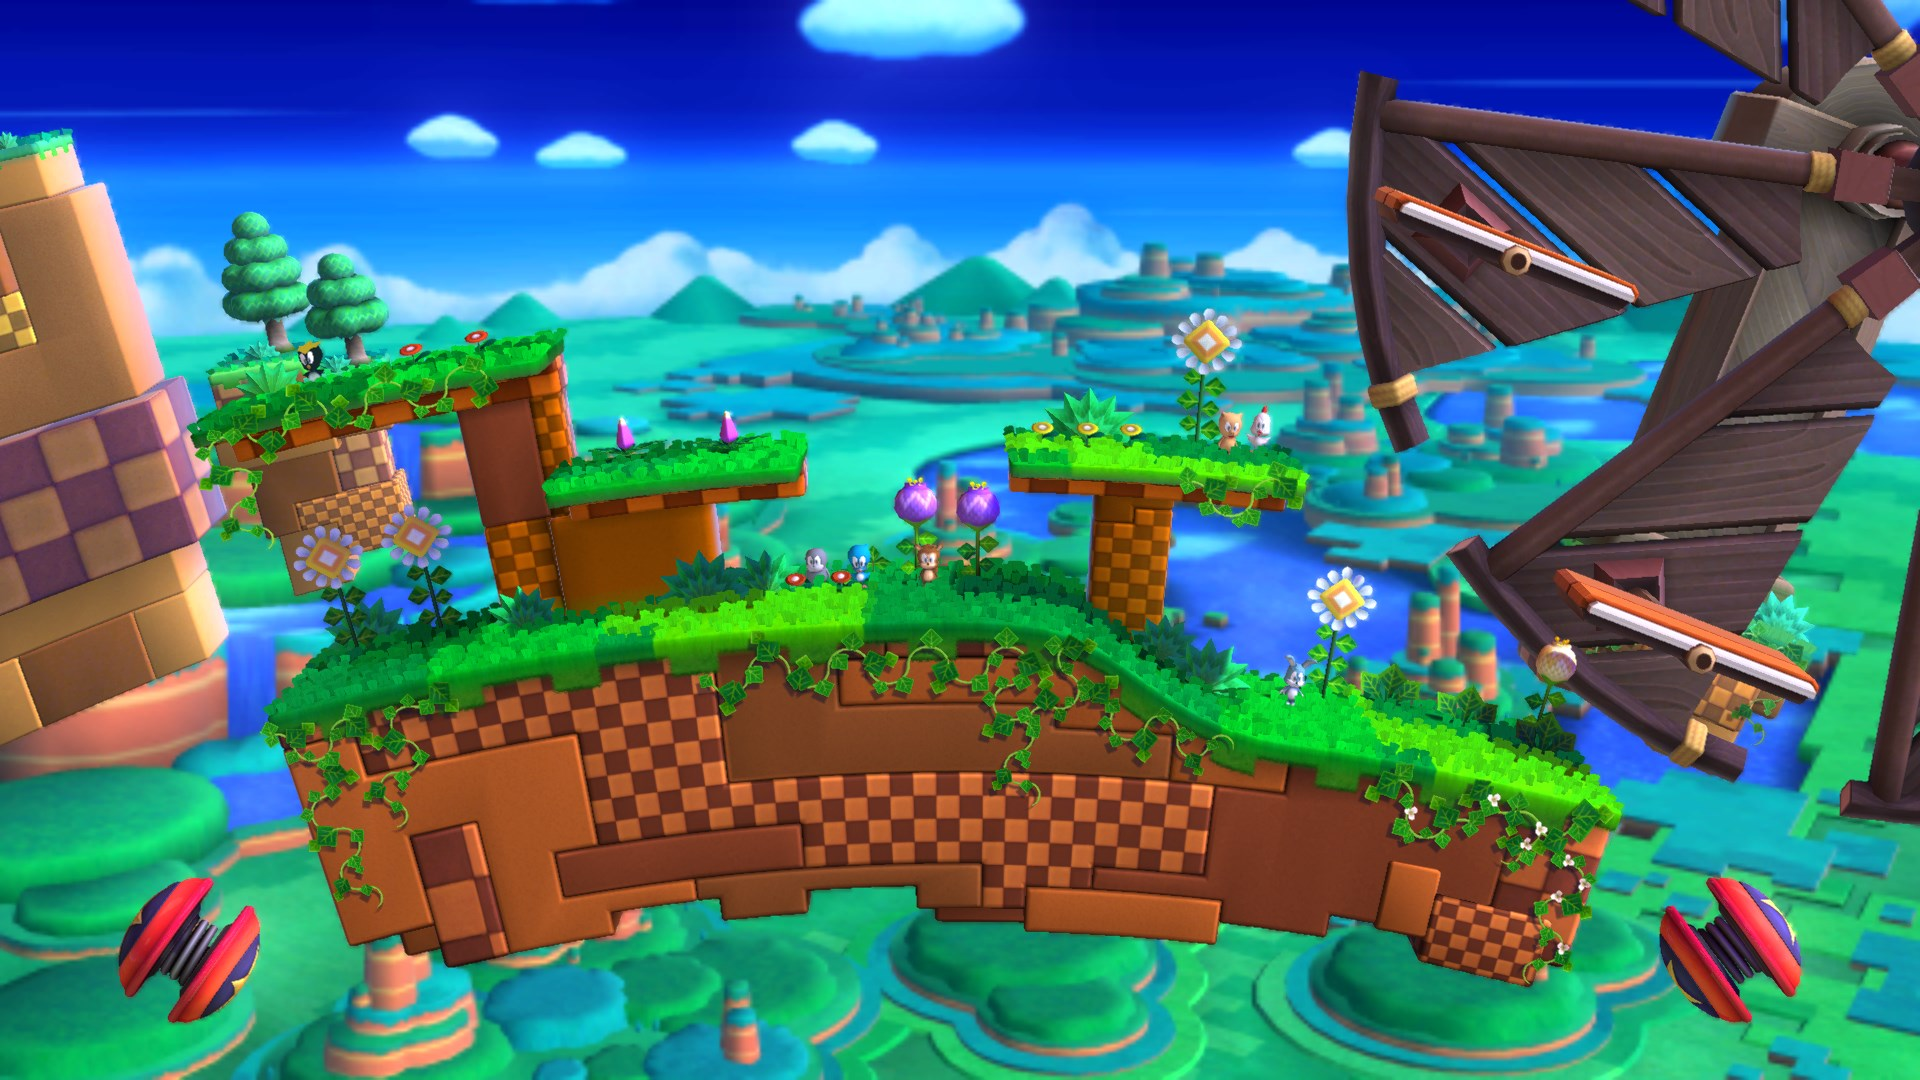 WiiU_SuperSmashBros_Stage02_Screen_01.jpg